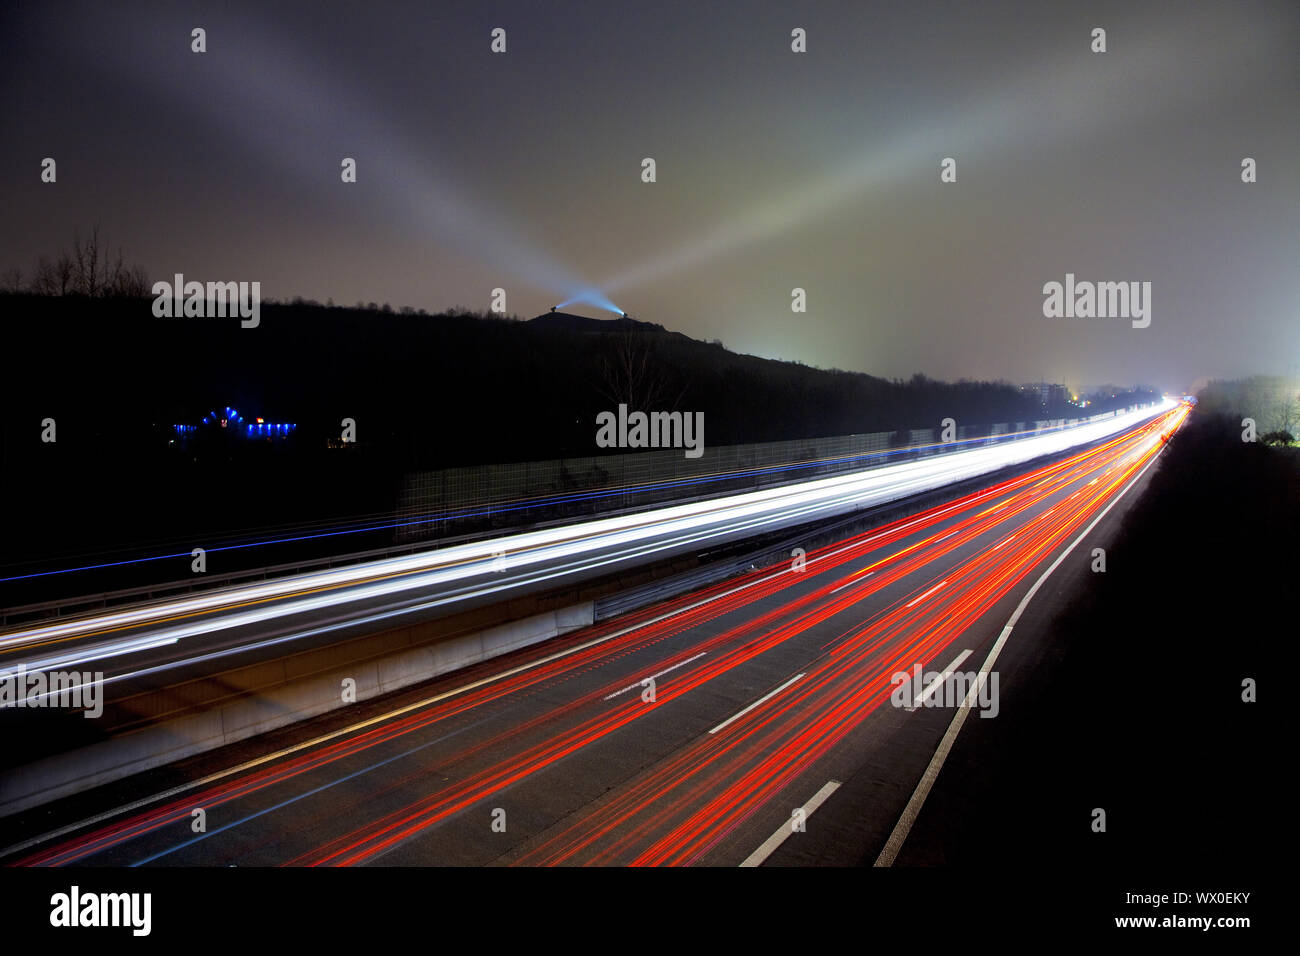 light streaks on highway A2 and the light beams on stockpile Rungenberg, Gelsenkirchen, Germany Stock Photo